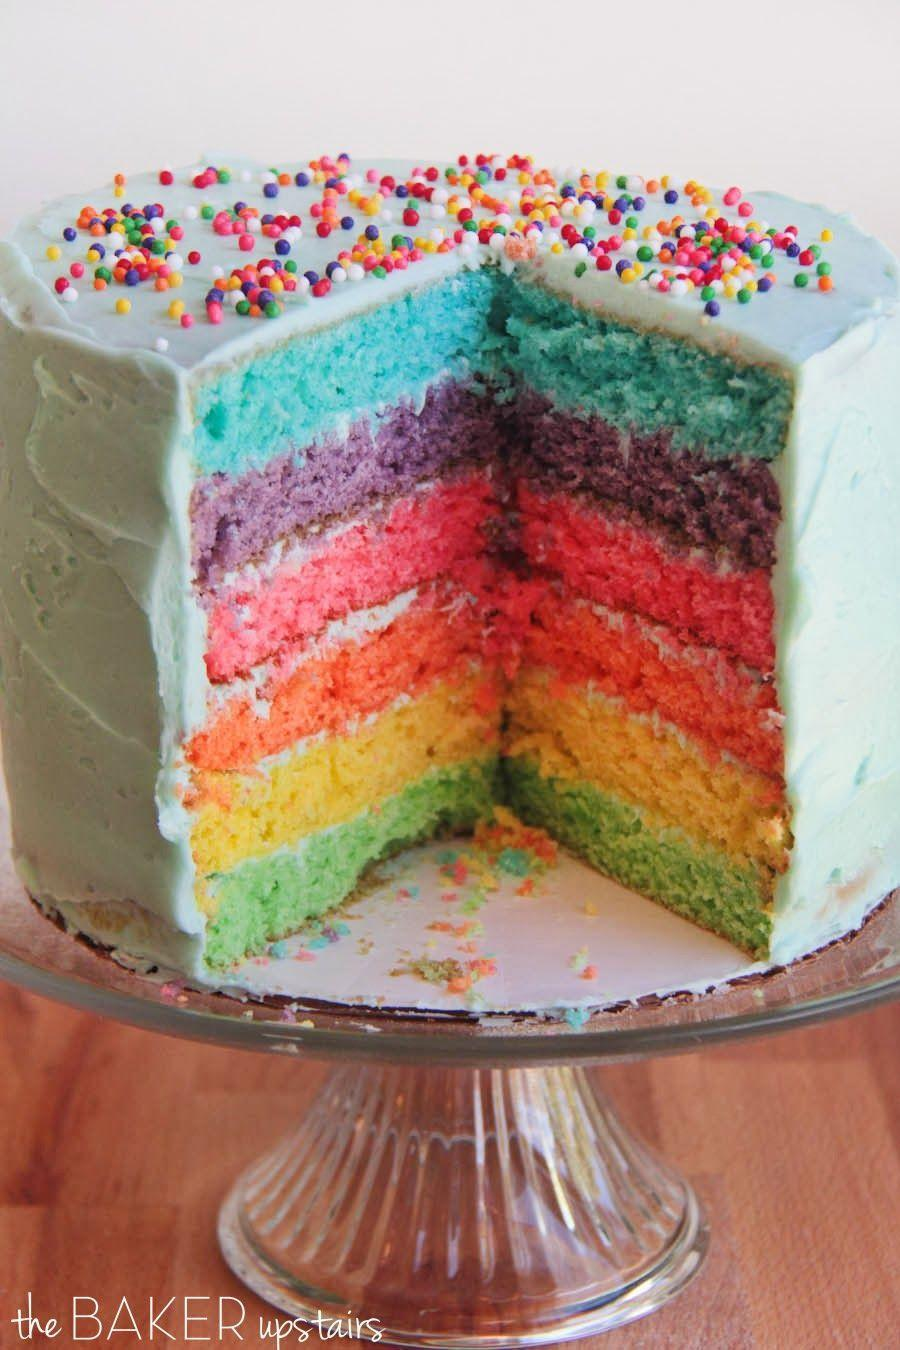 """<p>Somewhere over the rainbow are REALLY pretty cakes.</p><p>Get the recipe from <a href=""""http://www.thebakerupstairs.com/2014/03/six-layer-rainbow-cake.html"""" rel=""""nofollow noopener"""" target=""""_blank"""" data-ylk=""""slk:The Baker Upstairs"""" class=""""link rapid-noclick-resp"""">The Baker Upstairs</a>.</p>"""